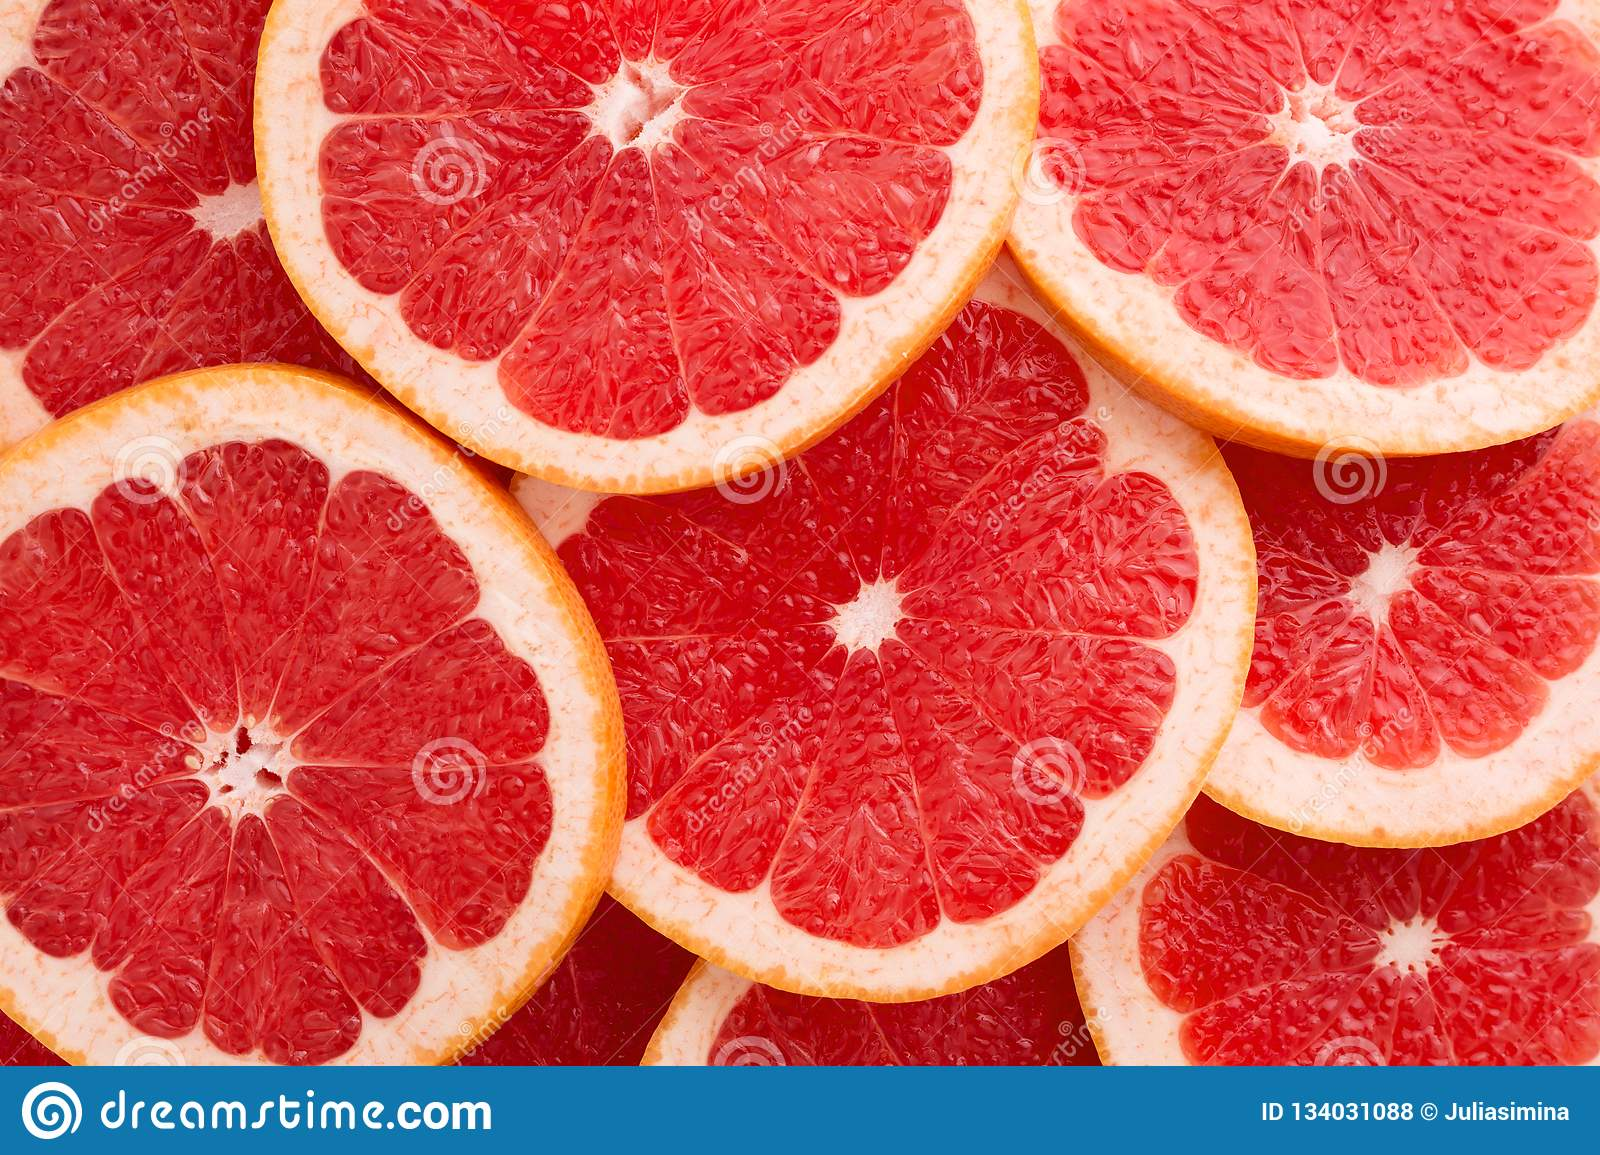 Close-up Grapefruit slices abstract background in Living Coral color